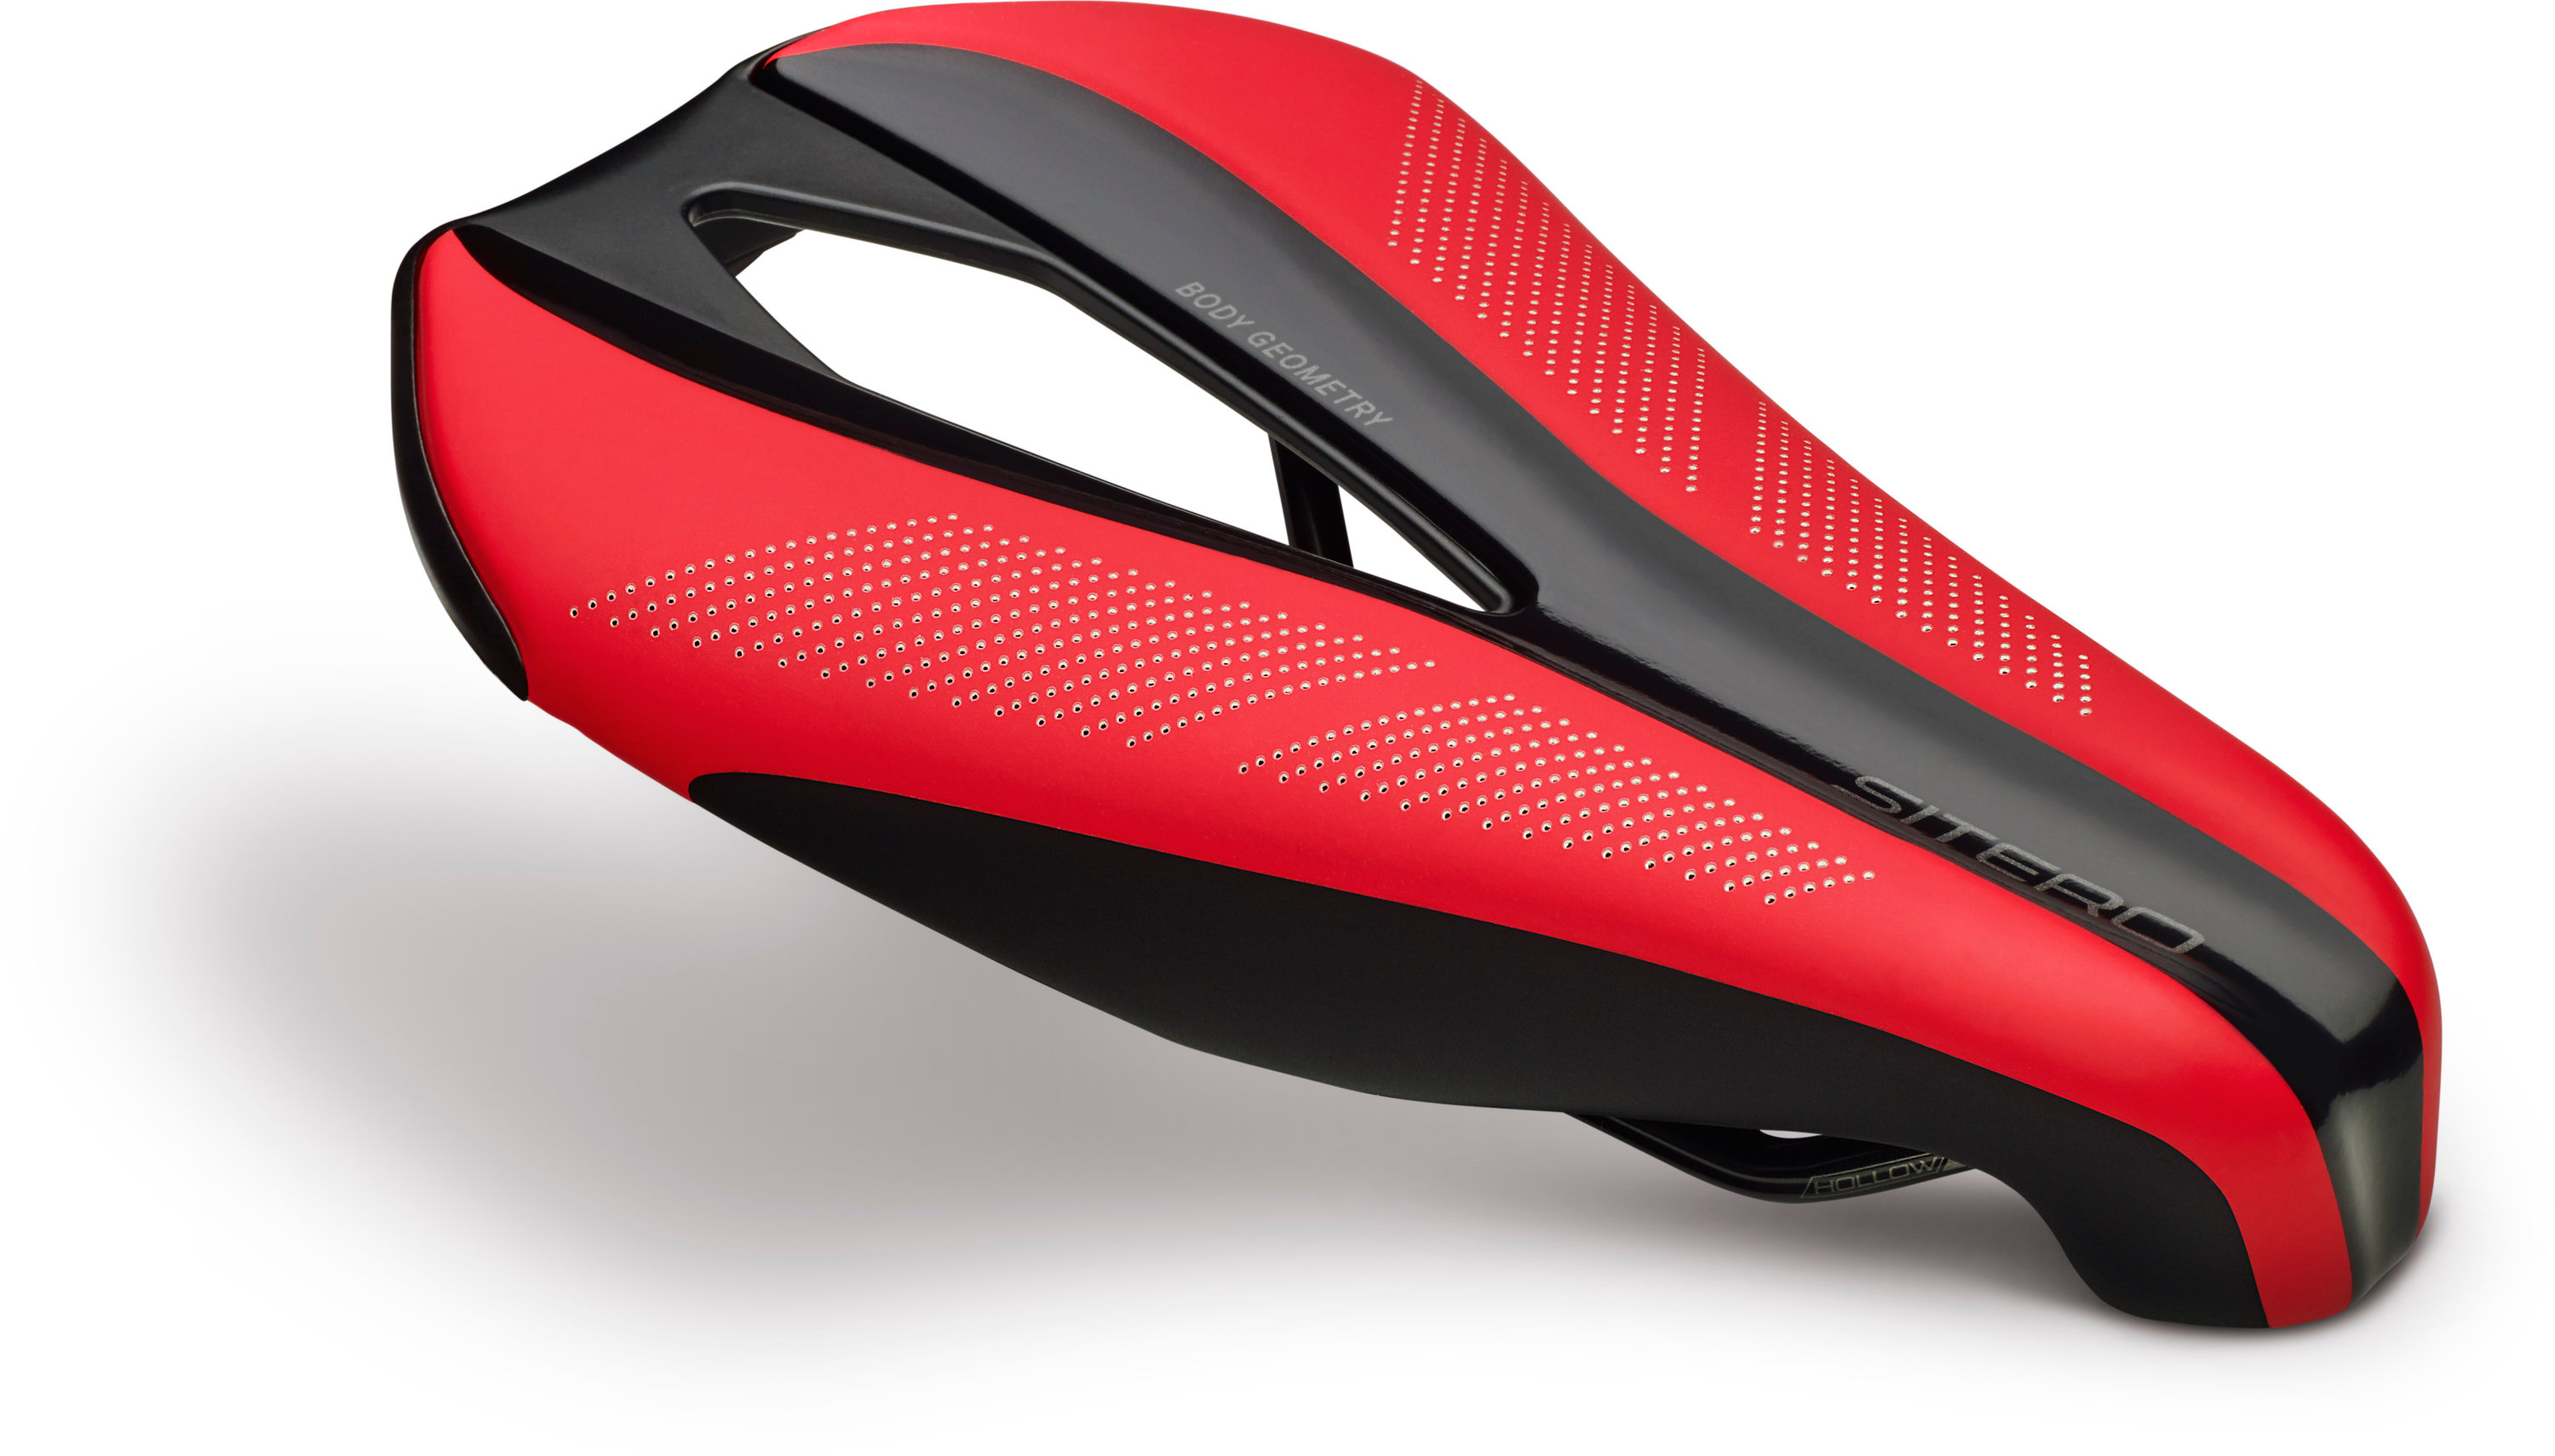 SPECIALIZED SITERO EXPERT GEL SADDLE RED - Bike Zone